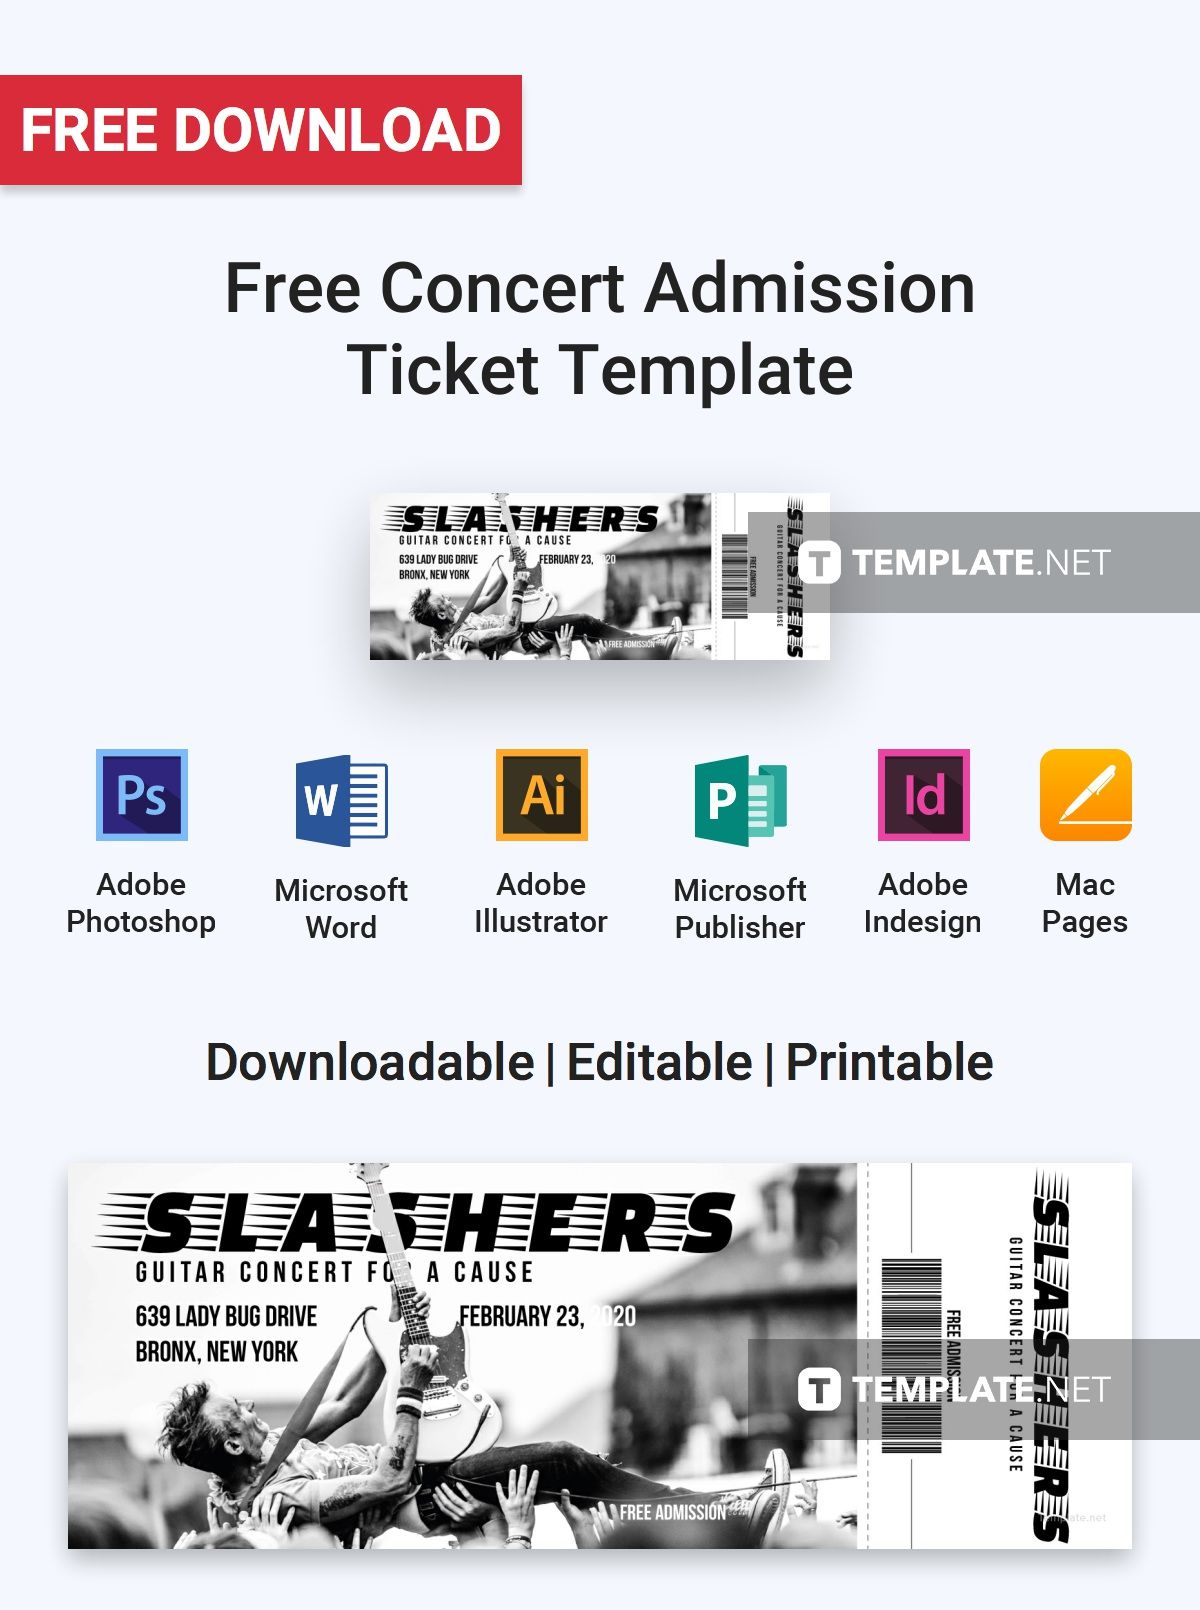 Free Concert Ticket Template Free Concert Admission Ticket  Admission Ticket Ticket Template .